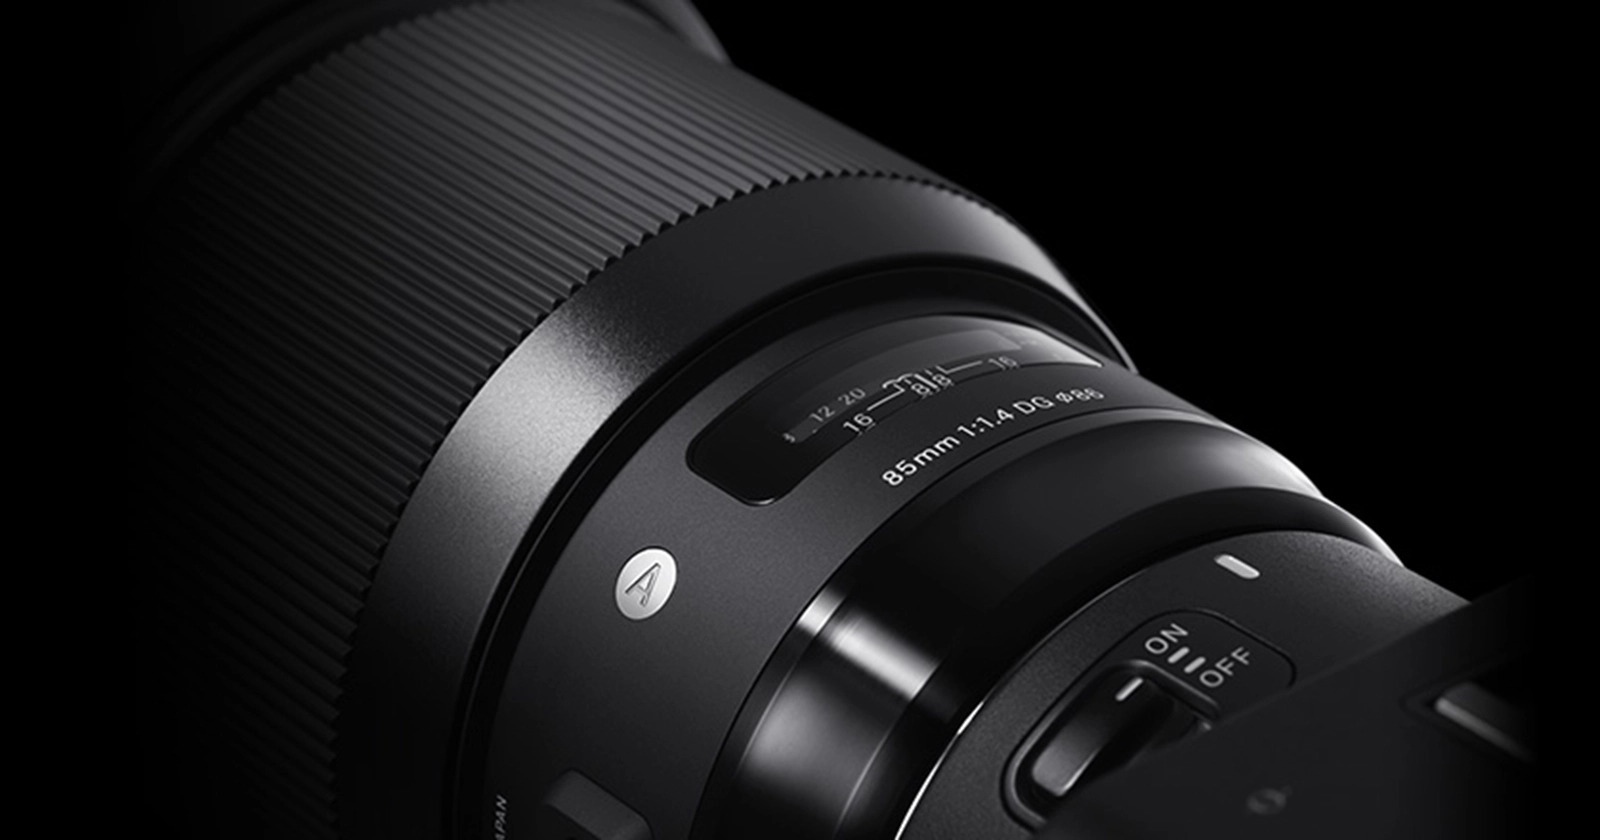 Sigma 85mm F1.4 DG DN Hands-on Review